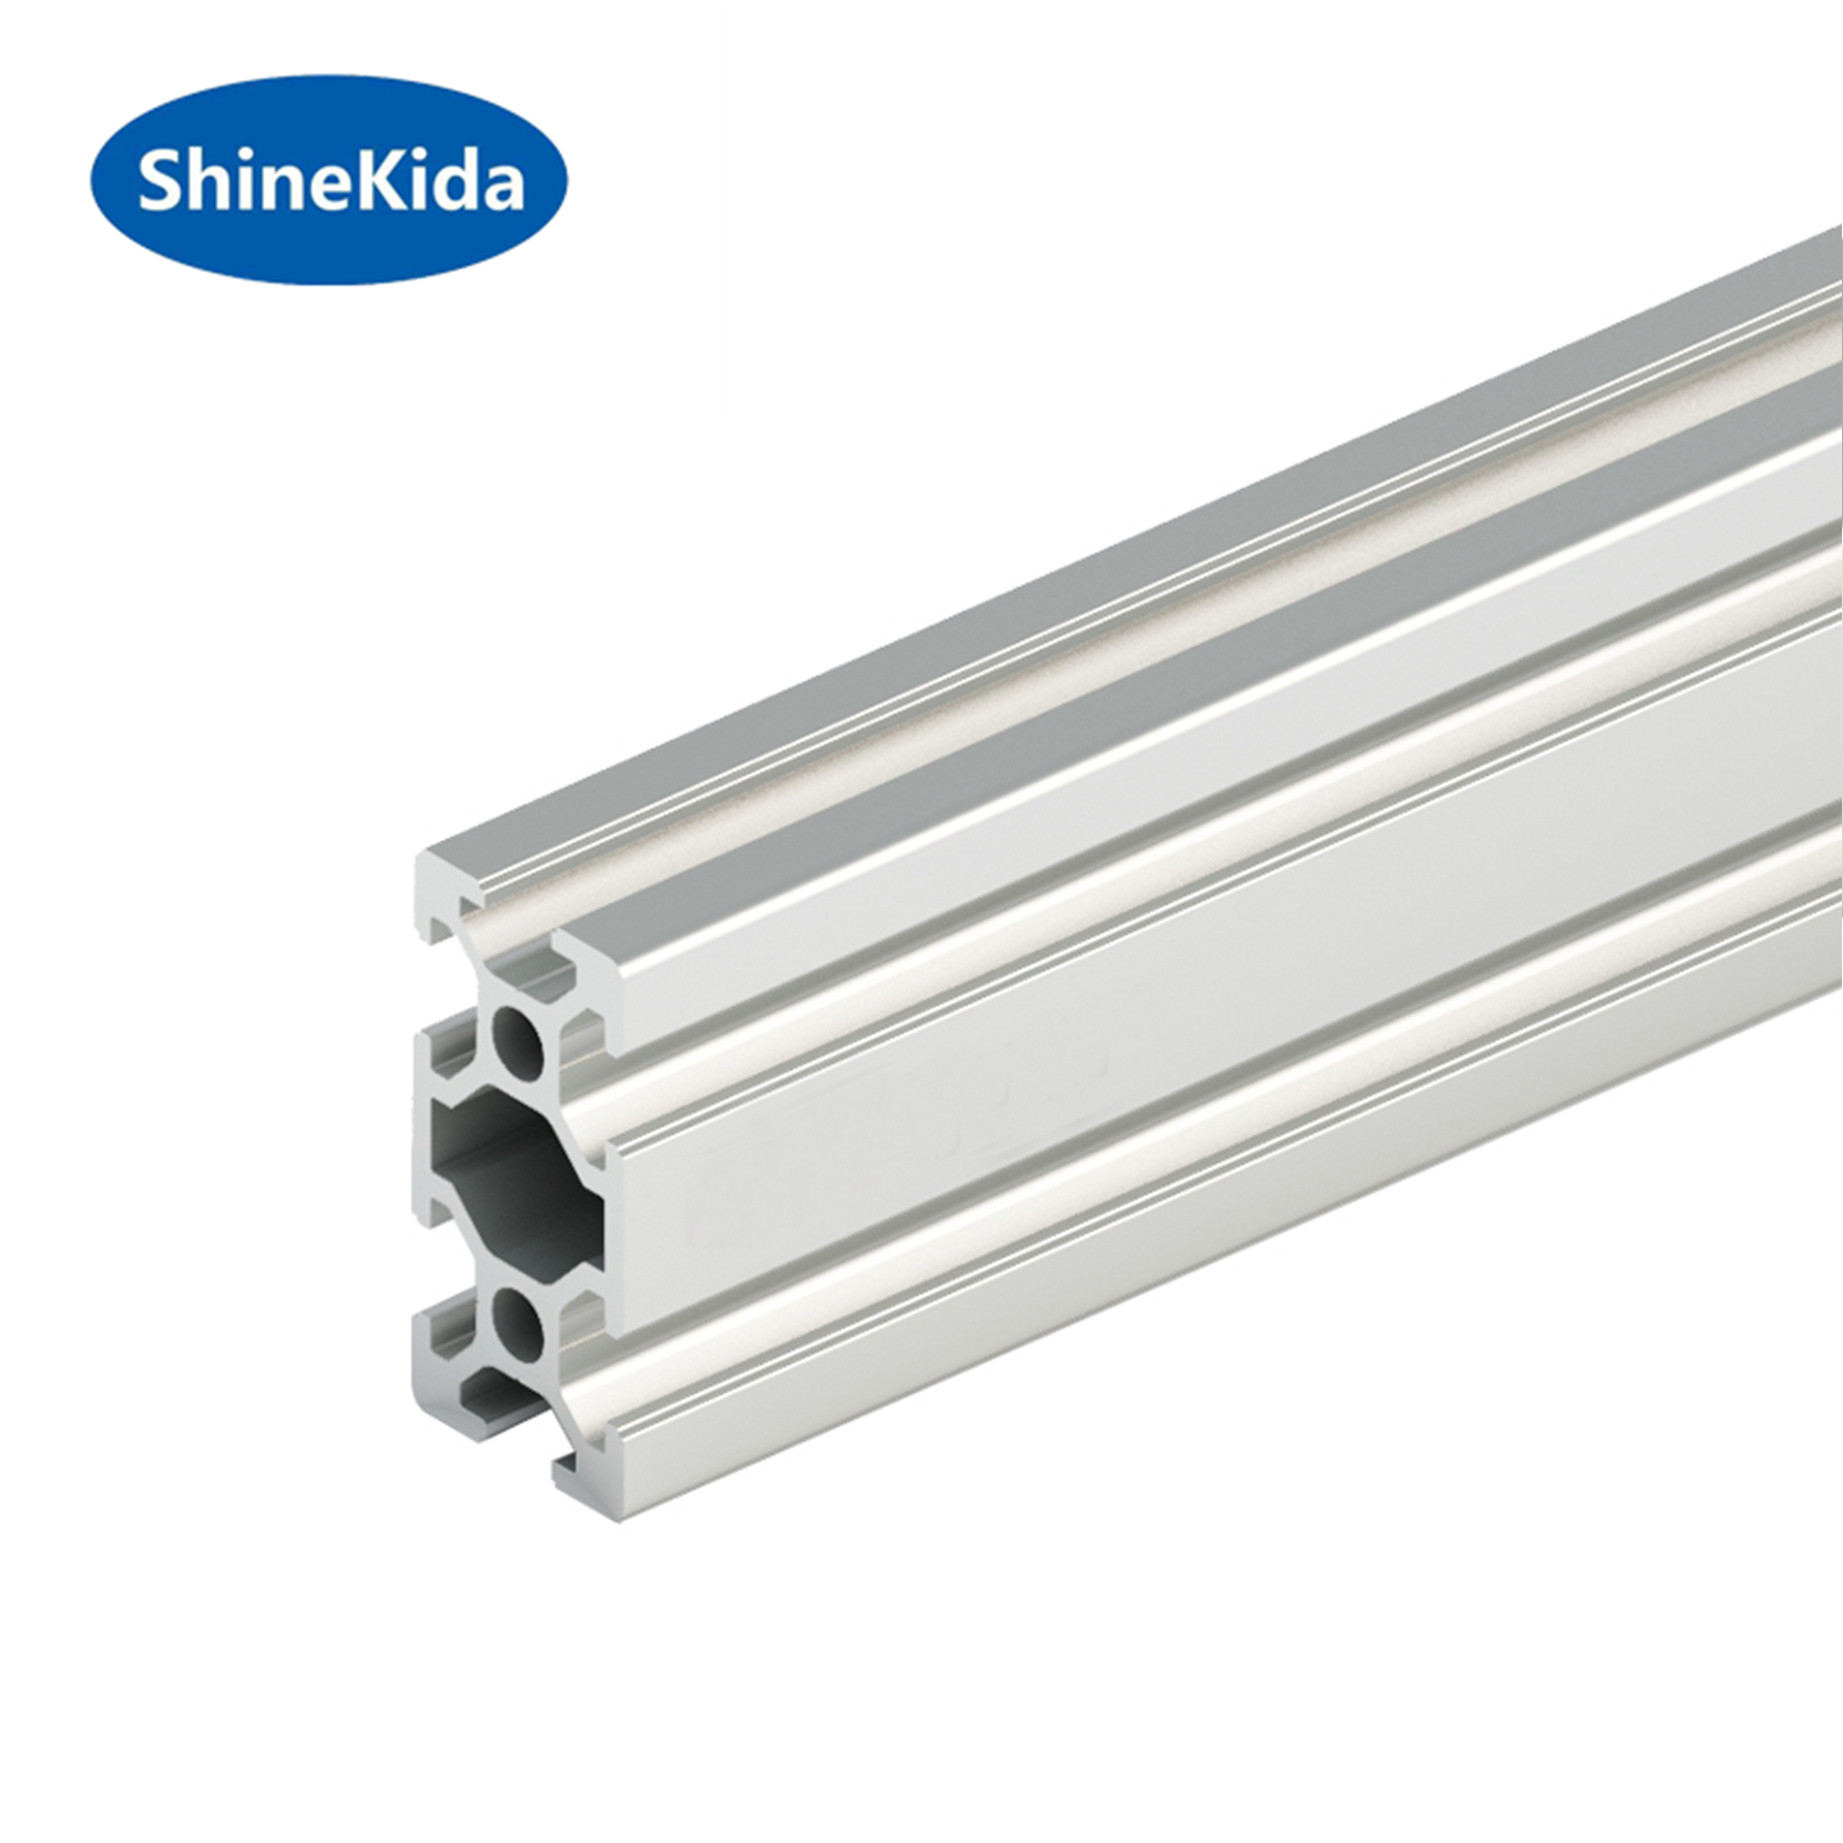 Aluminum profile 6 slot 2040 sales with competitive price hot 2020 extrusions t for delta reprap 3d